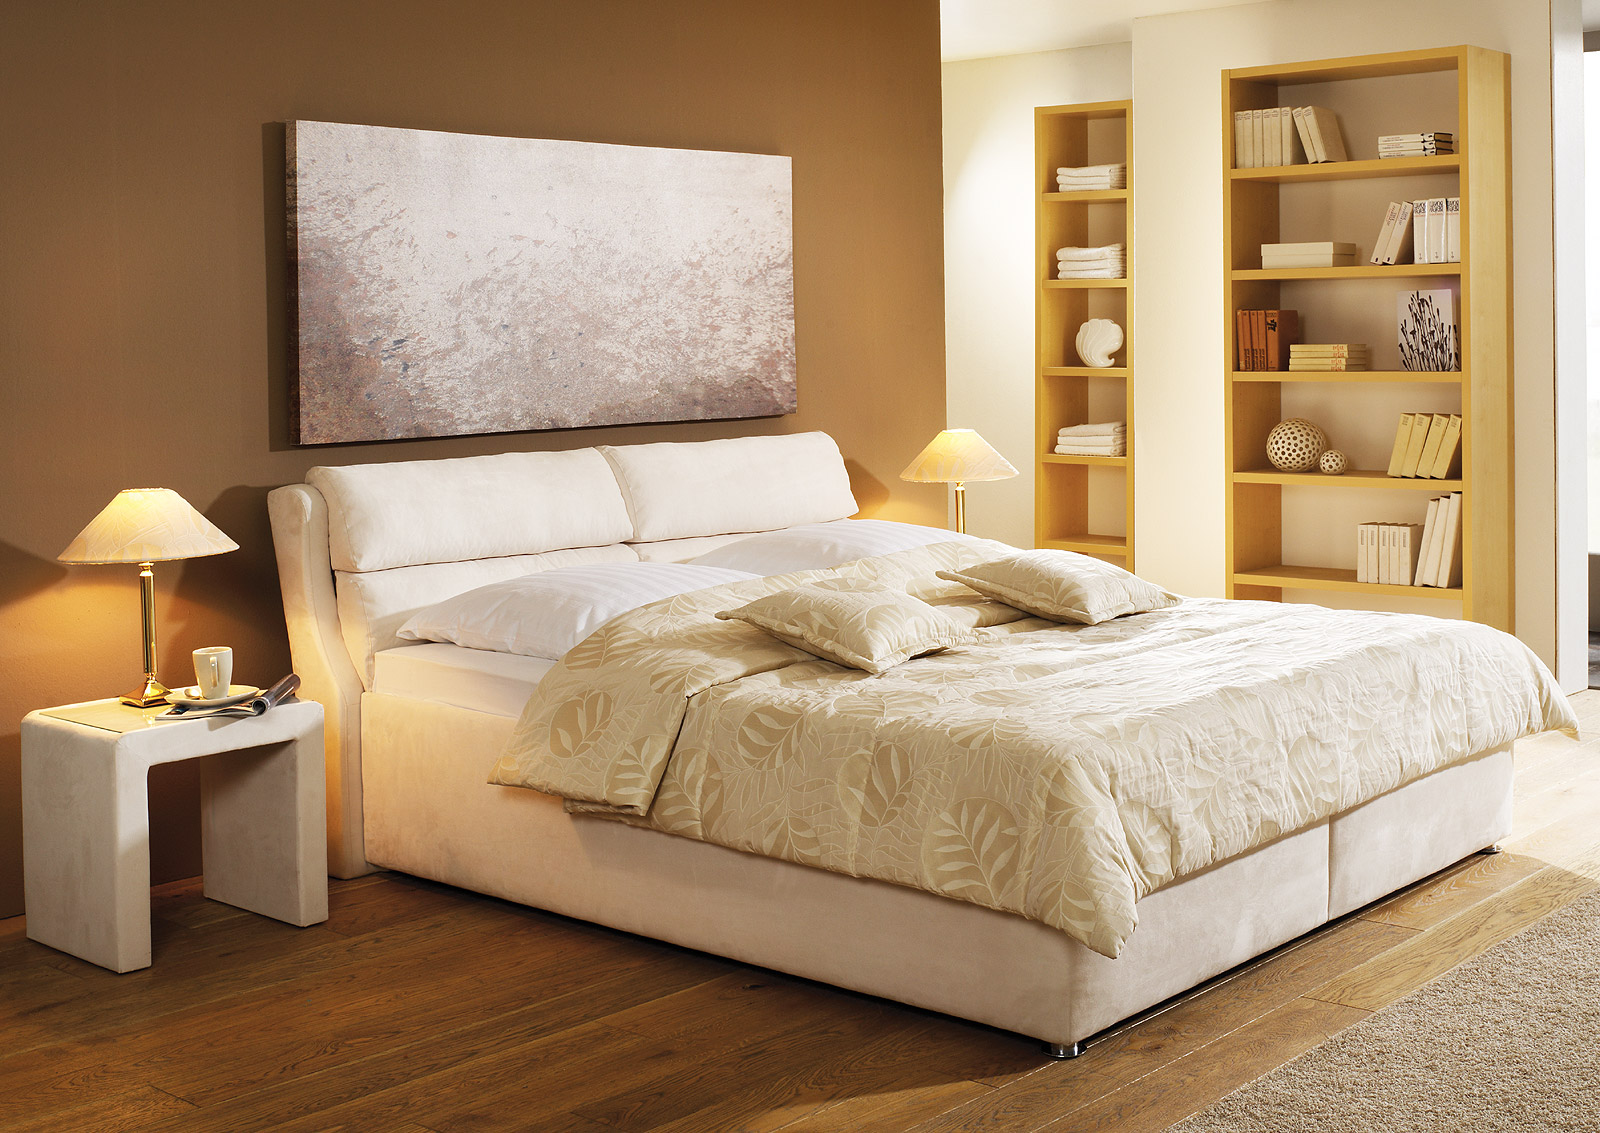 bett weiss 180x200 landhaus betten massiv holz moebel mit bettkasten. Black Bedroom Furniture Sets. Home Design Ideas